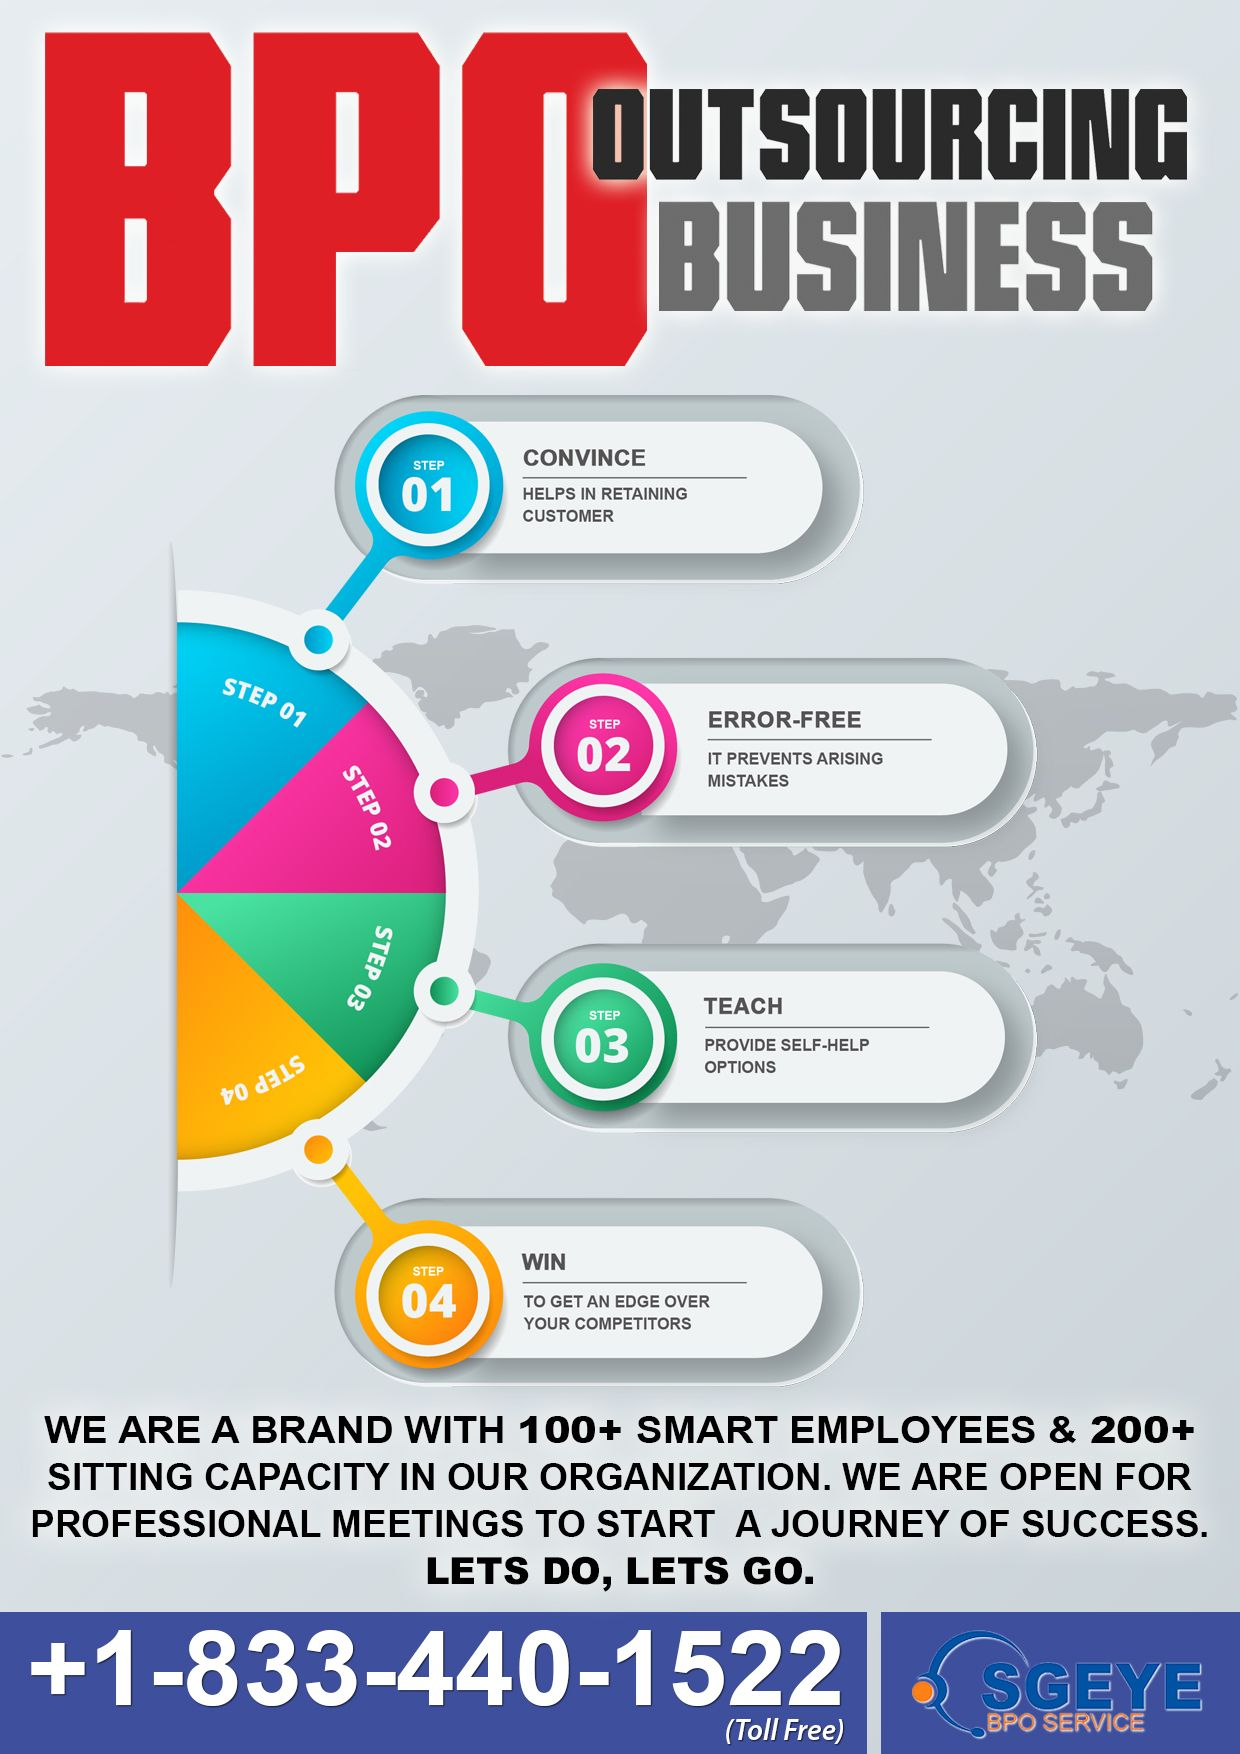 8 Reason why industries outsource to SGEYE BPO service.